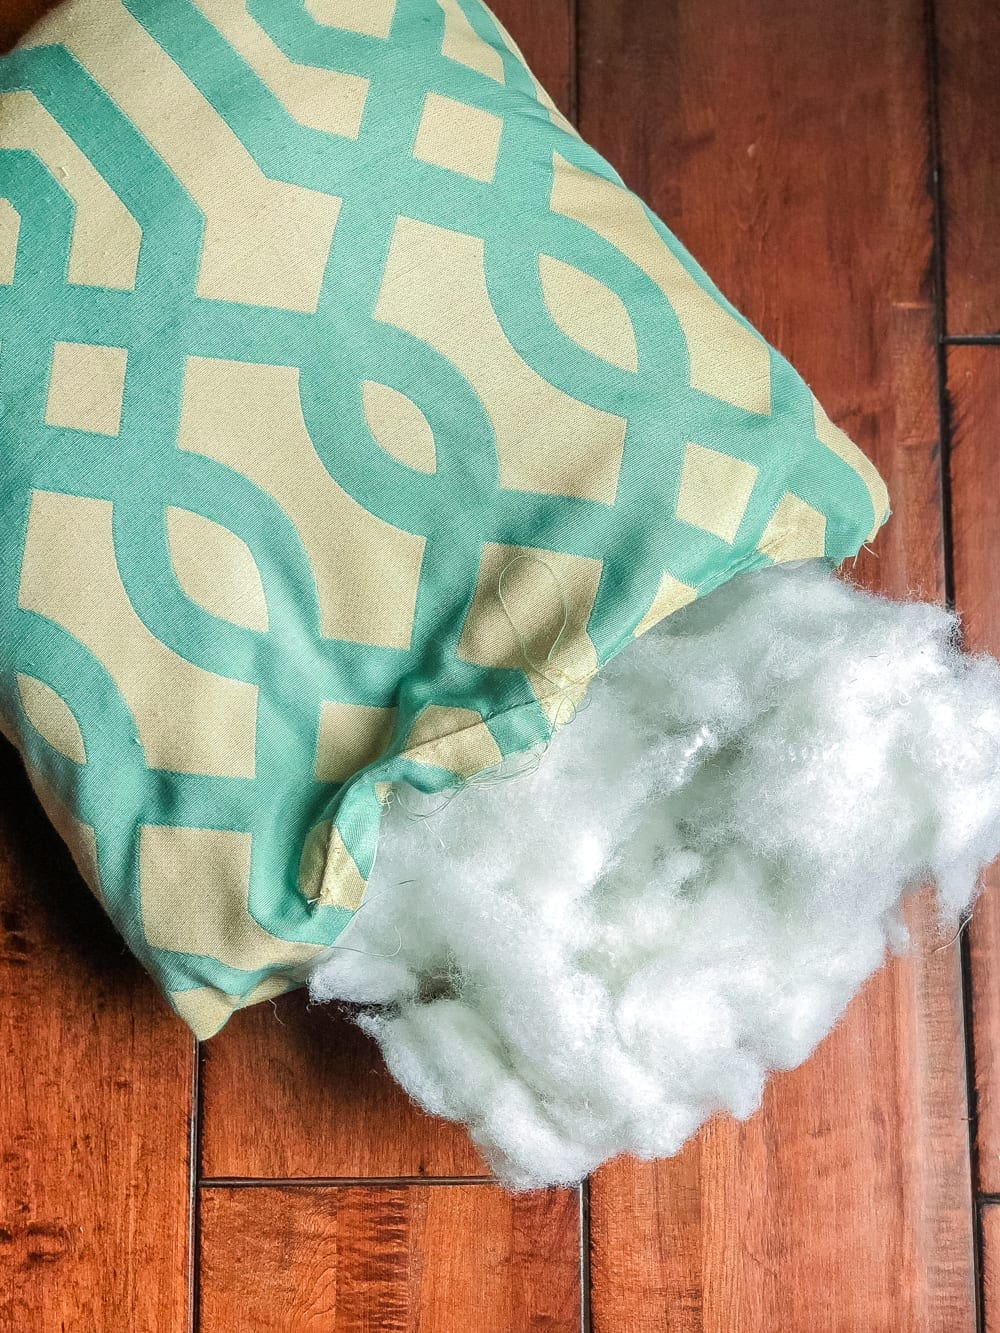 3 items you can repurpose into DIY no-sew throw pillows | Reuse polyfill from old pillows to make new ones and save money